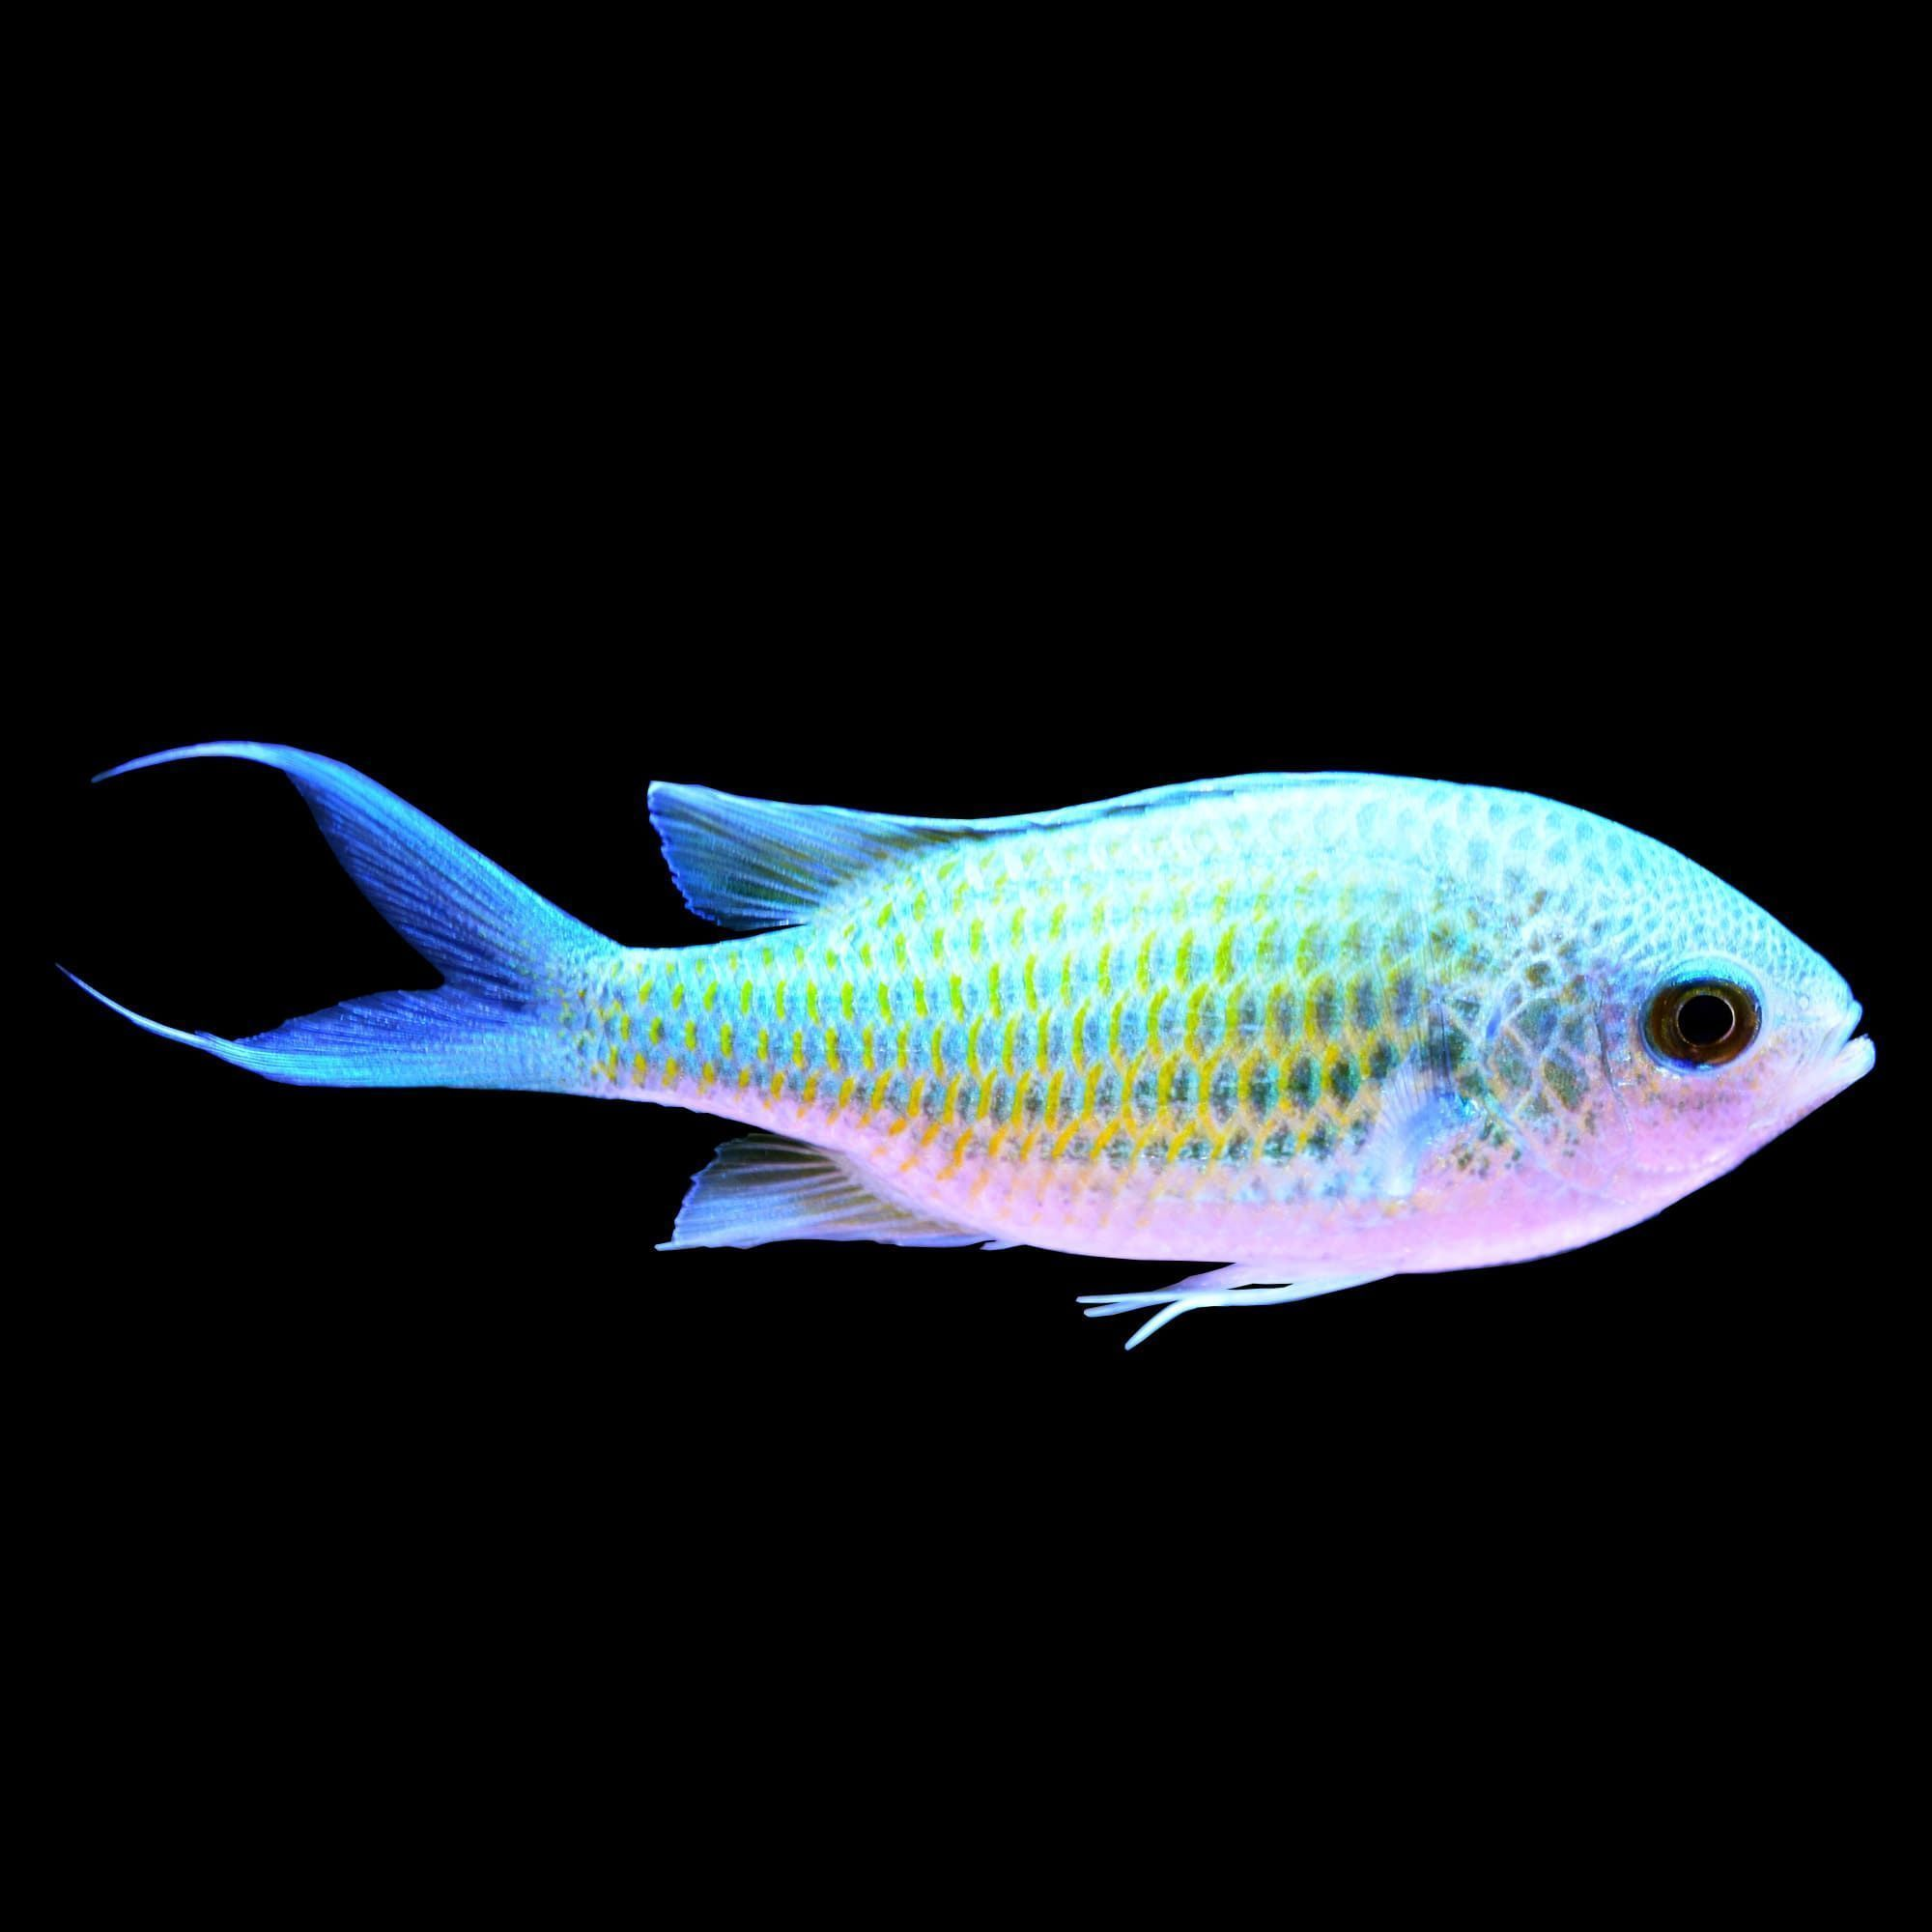 Green Chromis Small Petco In 2020 Salt Water Fish Small Fish Tanks Saltwater Fish Tanks